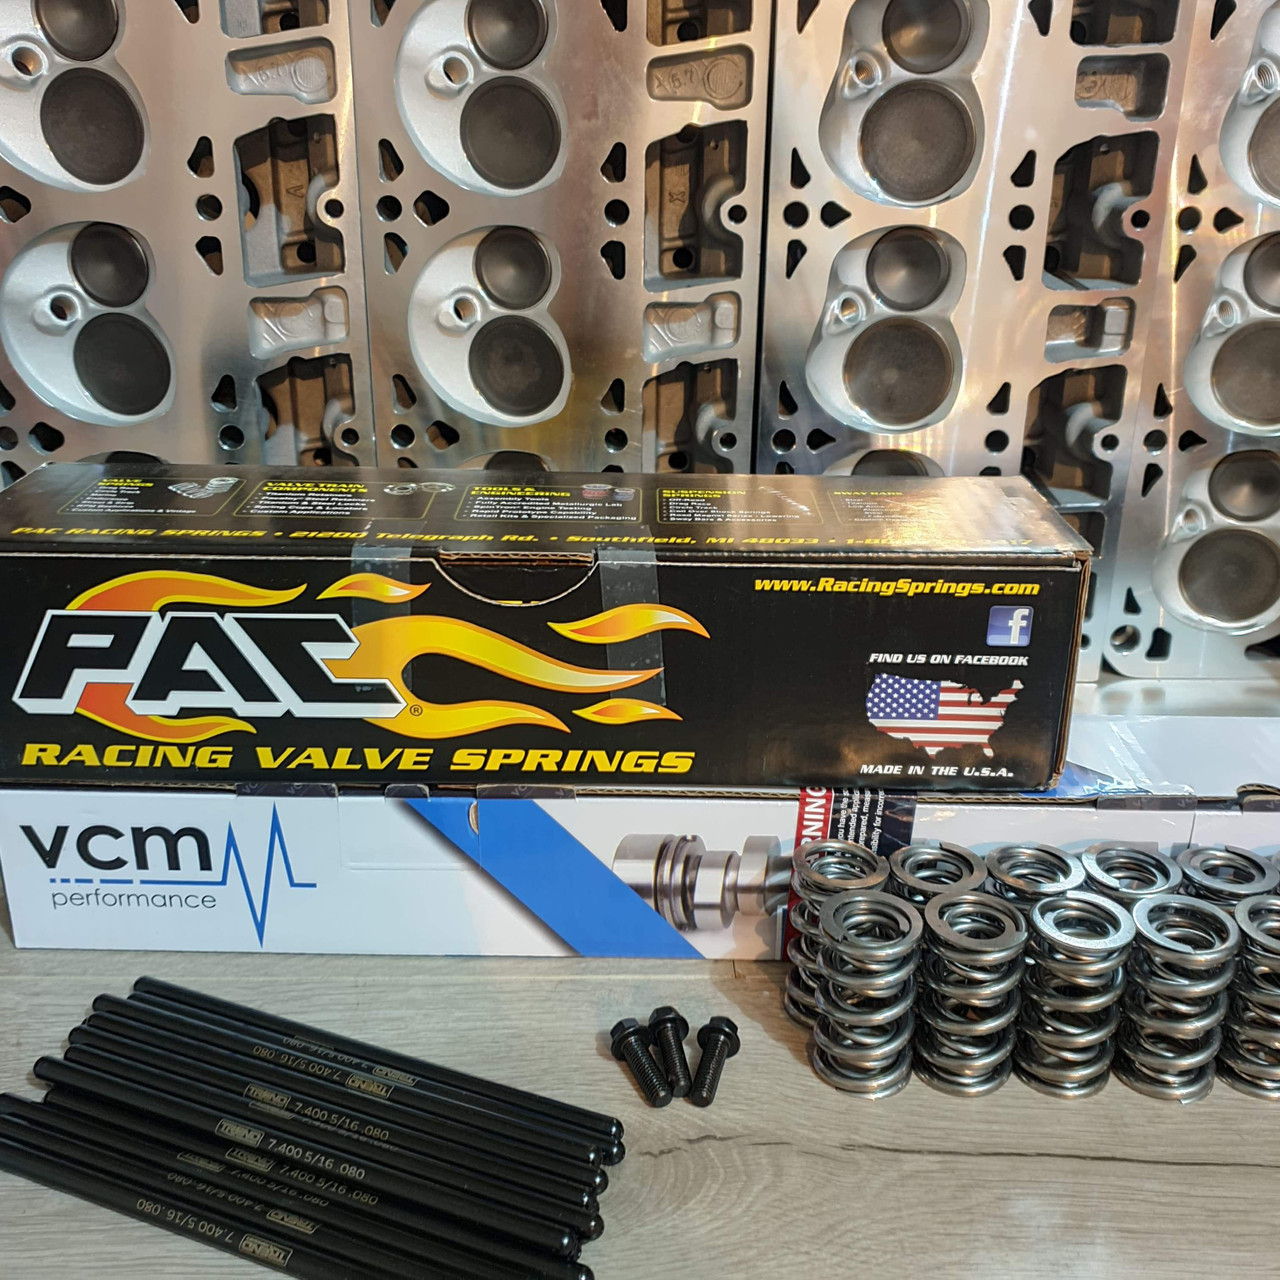 ** SALE PRICE 1 X LEFT!! ** VCM 16 Performance Camshaft Package